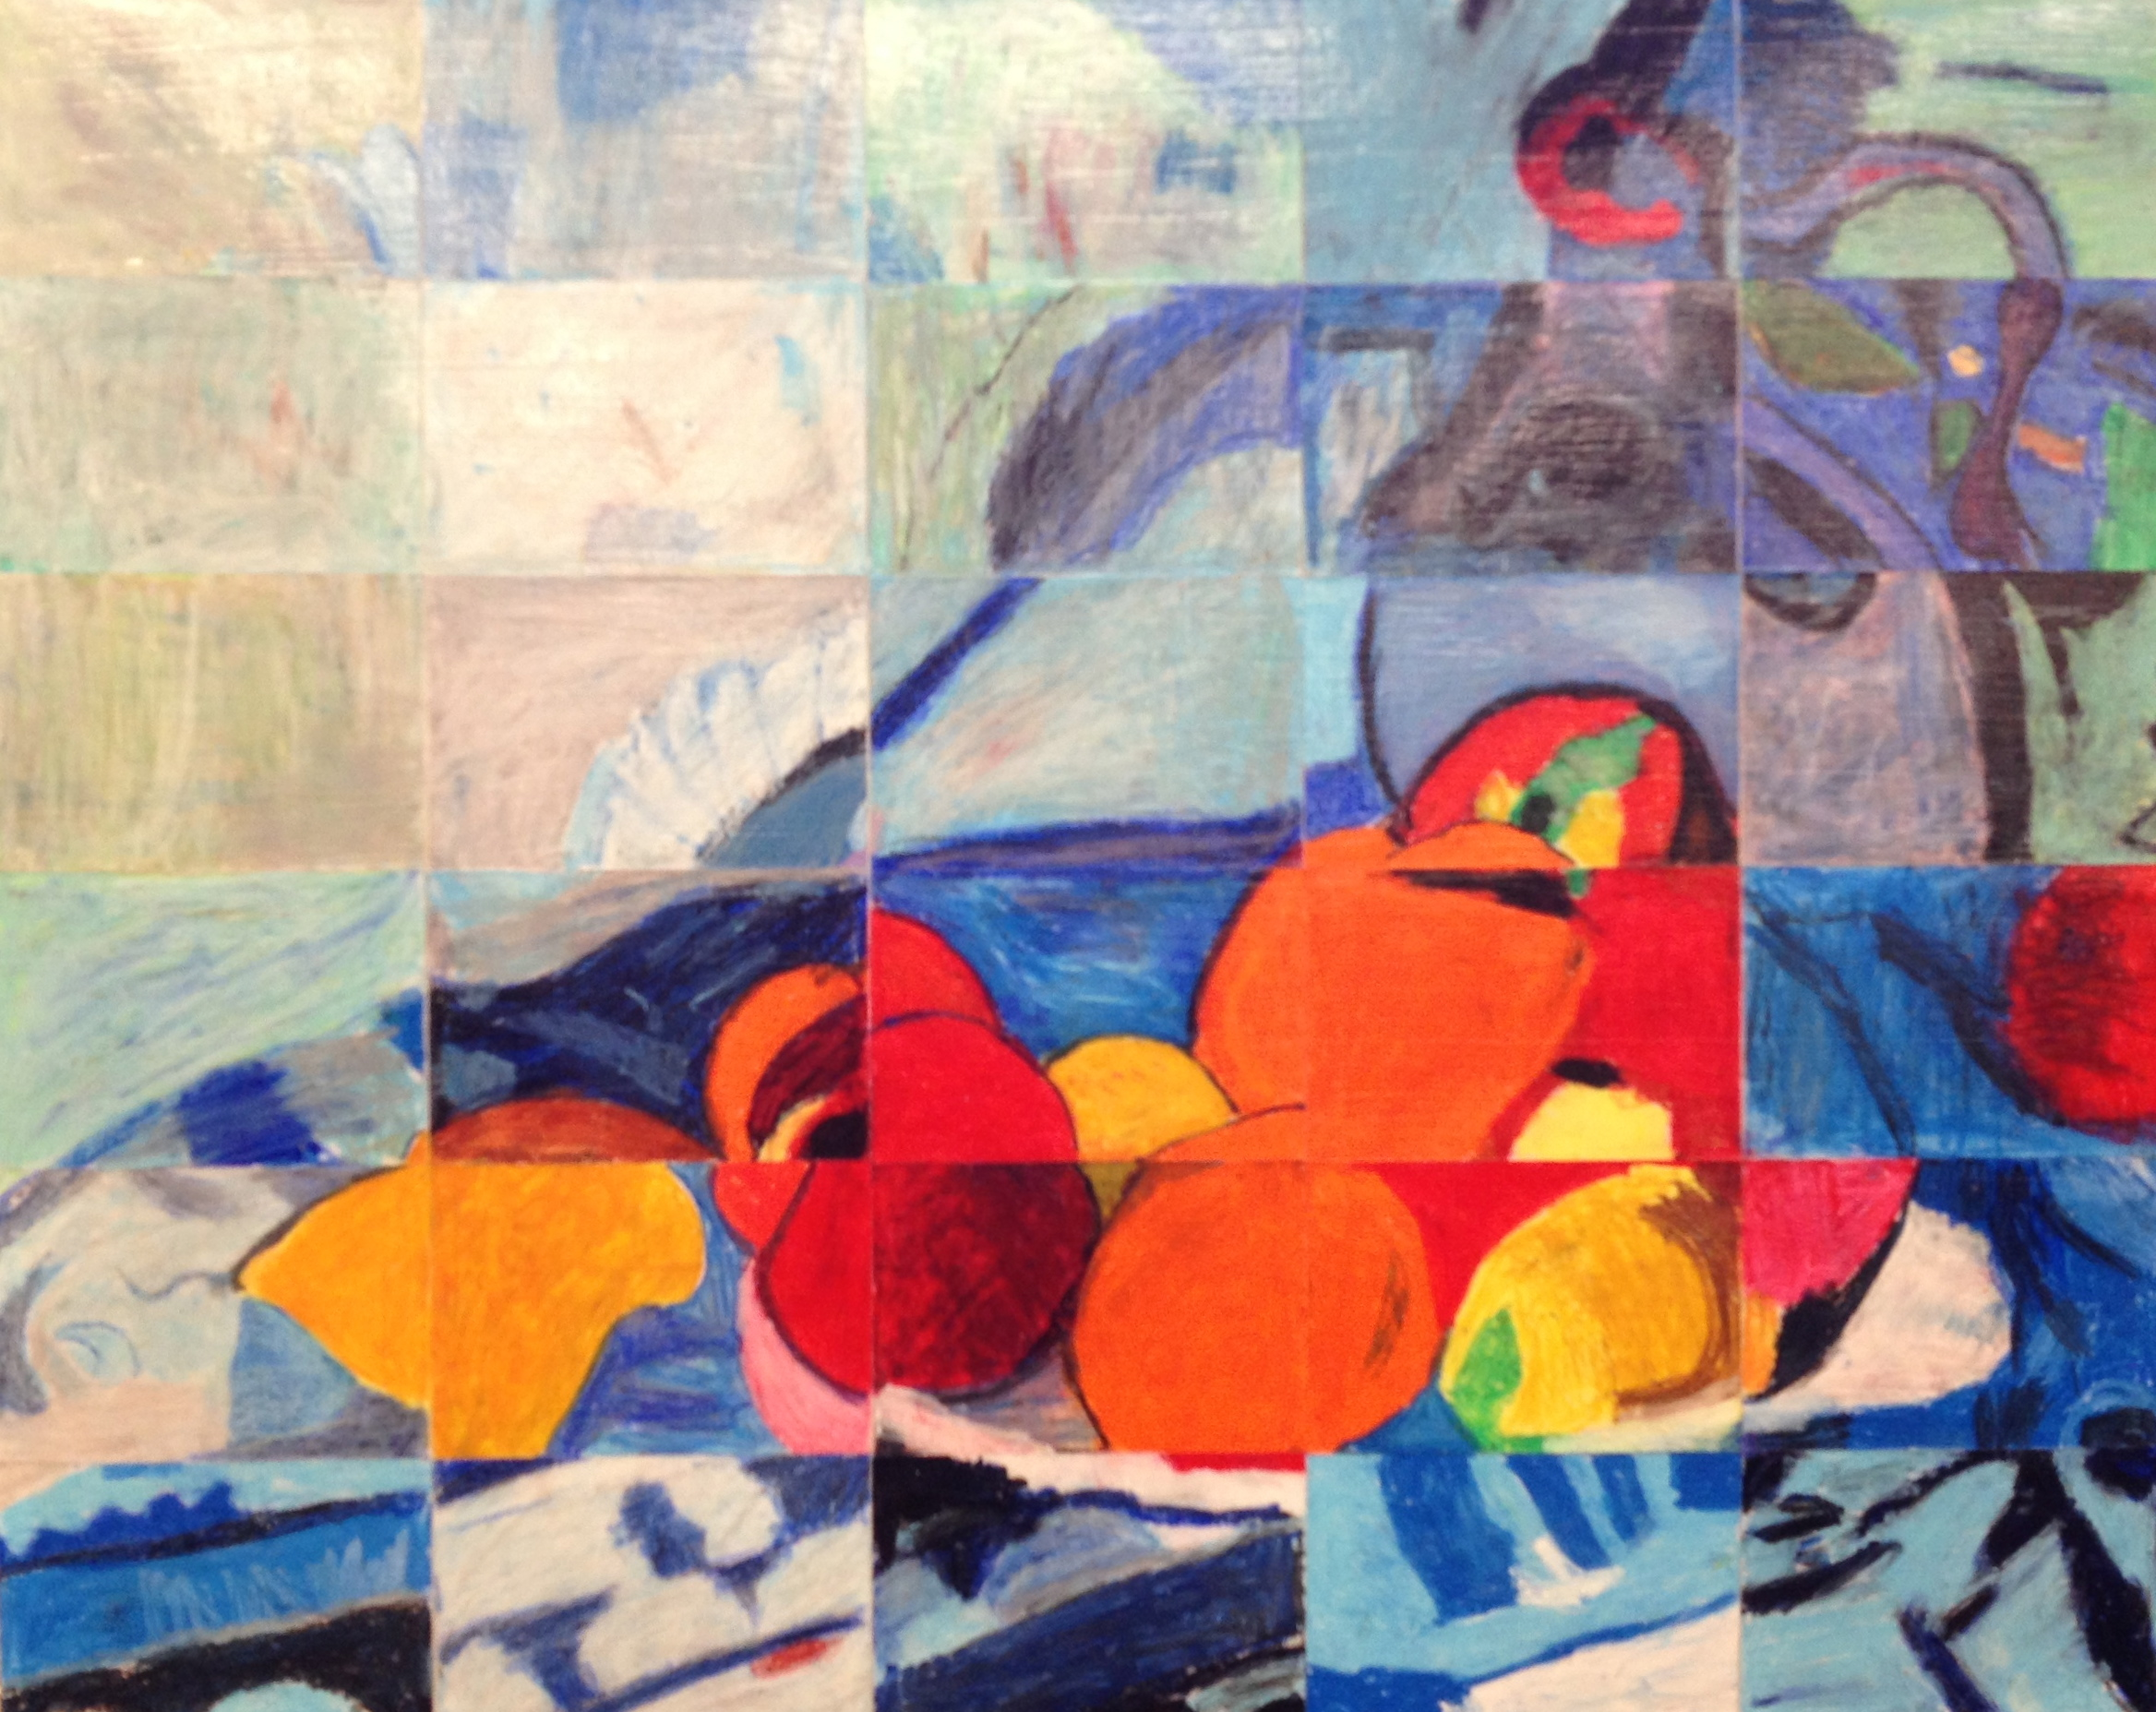 3rd Grade Masterpiece Mosaic Of Fruit And A Jug On Table By Paul